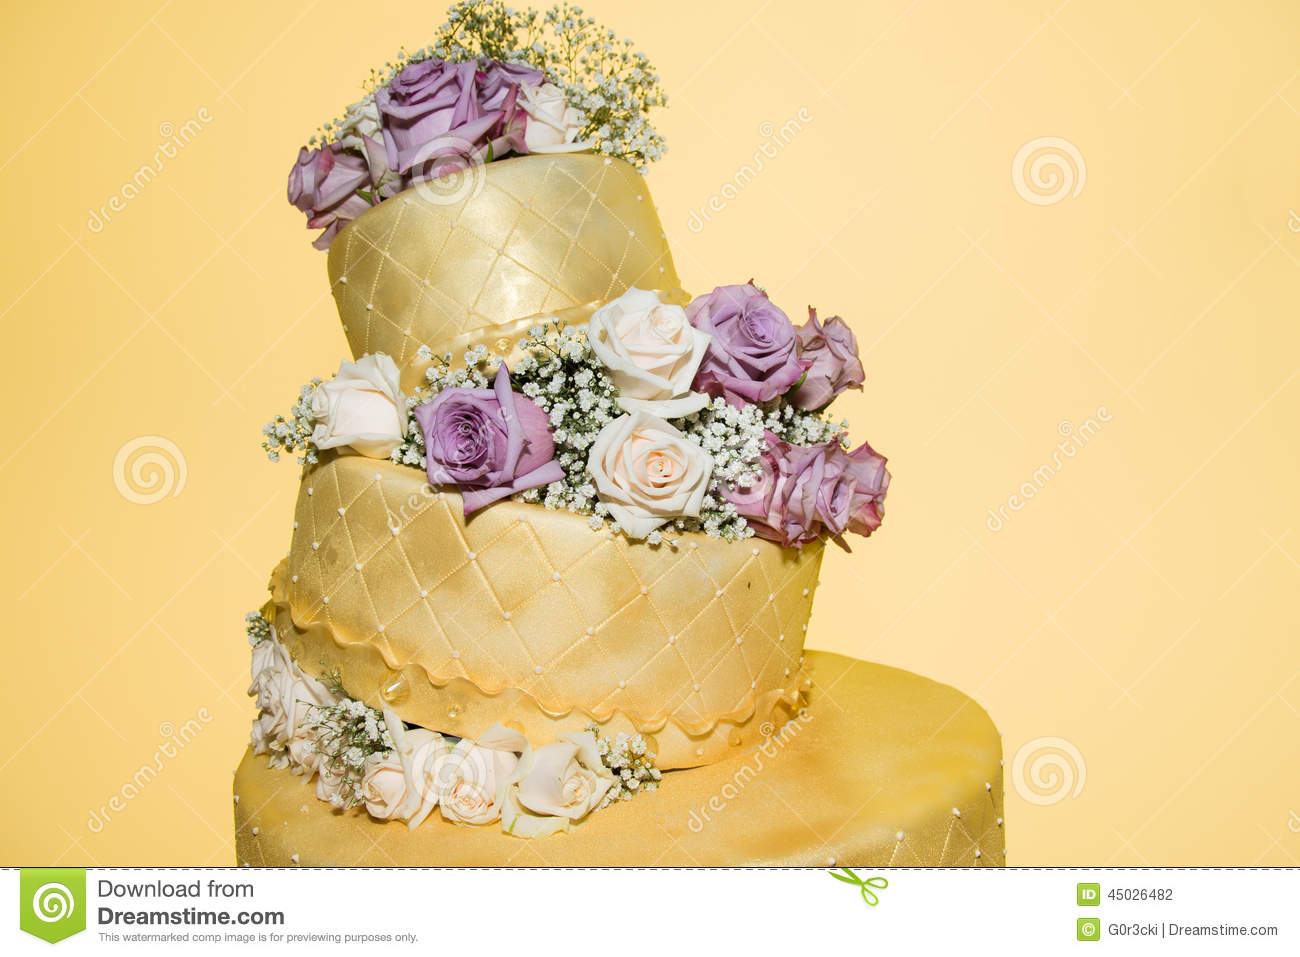 Golden Wedding Cake With Real Roses Stock Photo - Image of cream ...